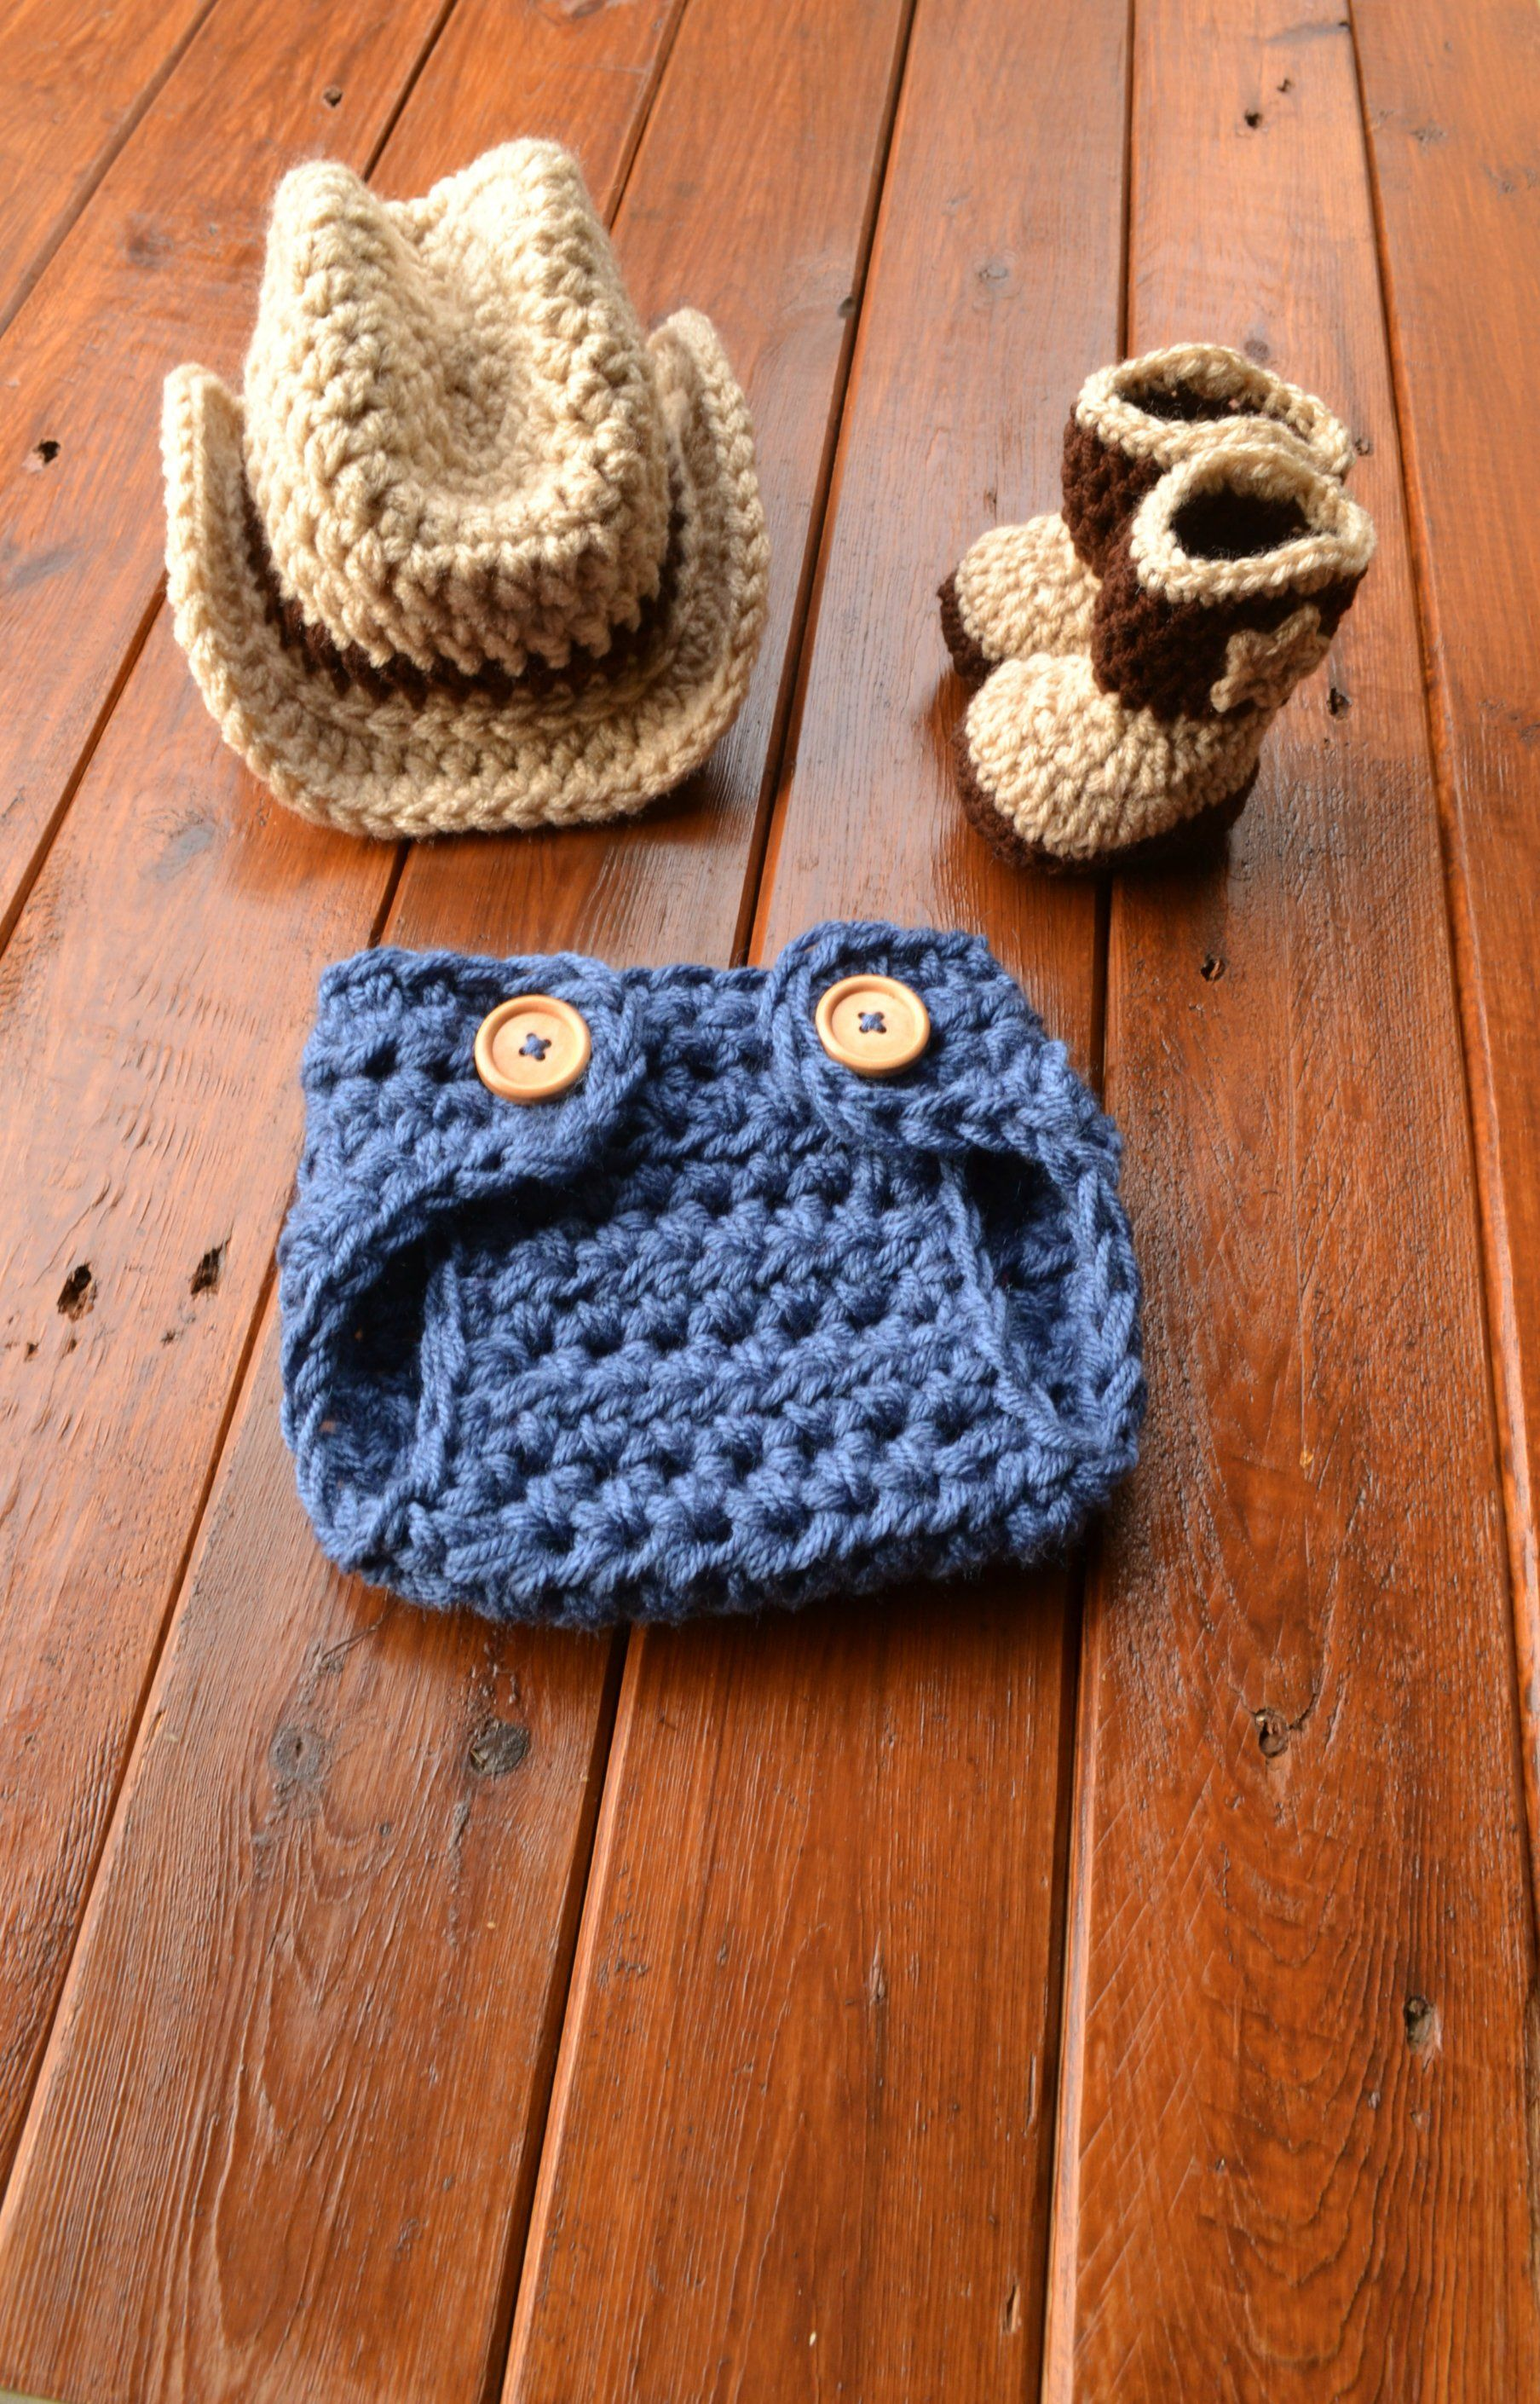 b2e00912 Excited to share the latest addition to my #etsy shop: Crochet Baby Cowboy  Outfit